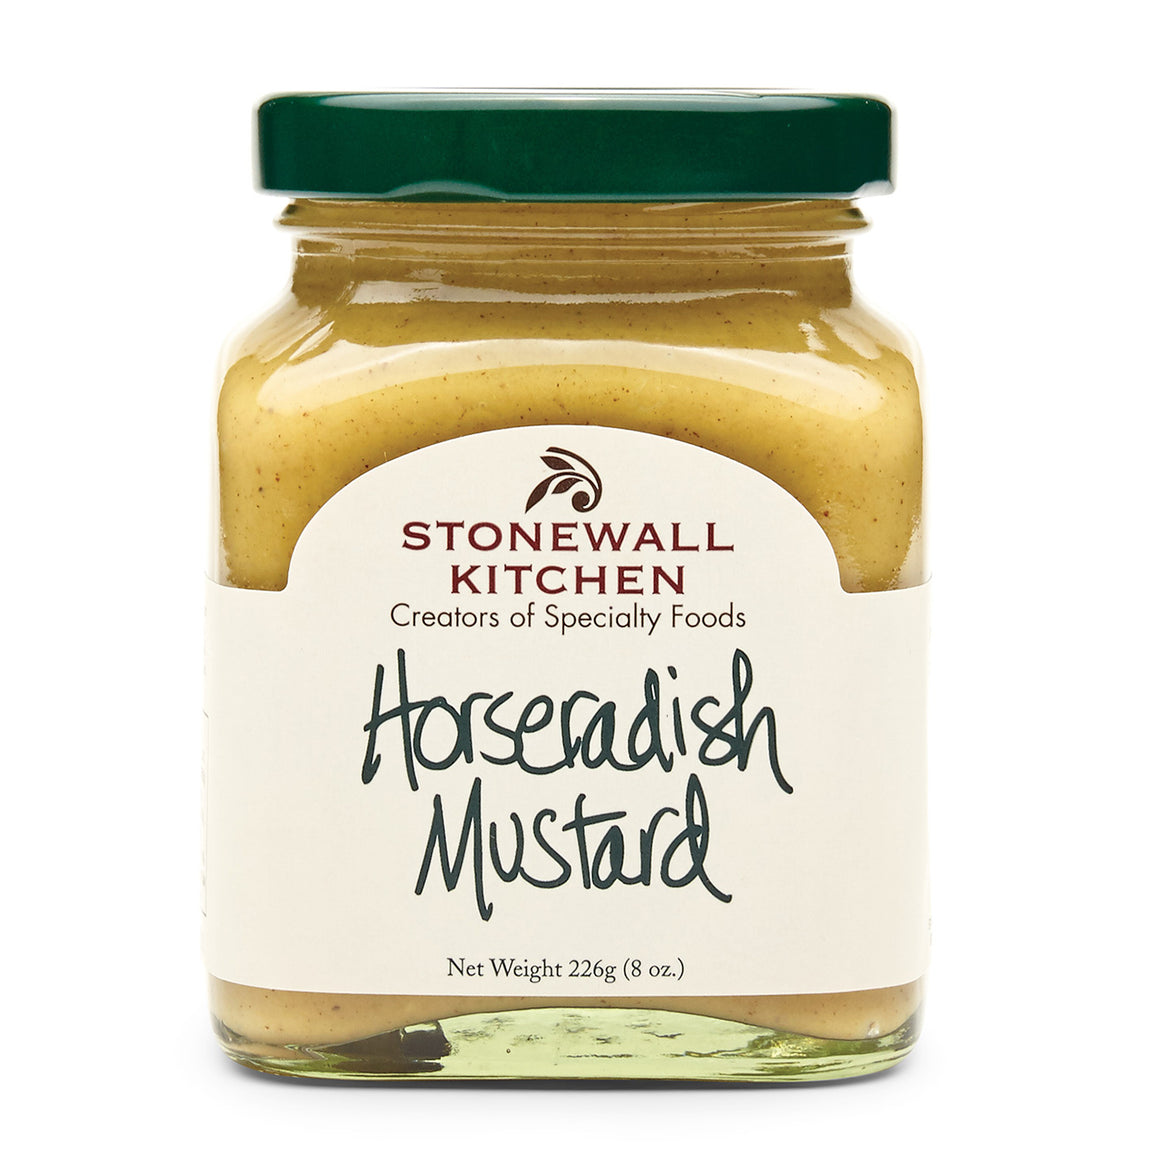 Horseradish Mustard by Stonewall Kitchen